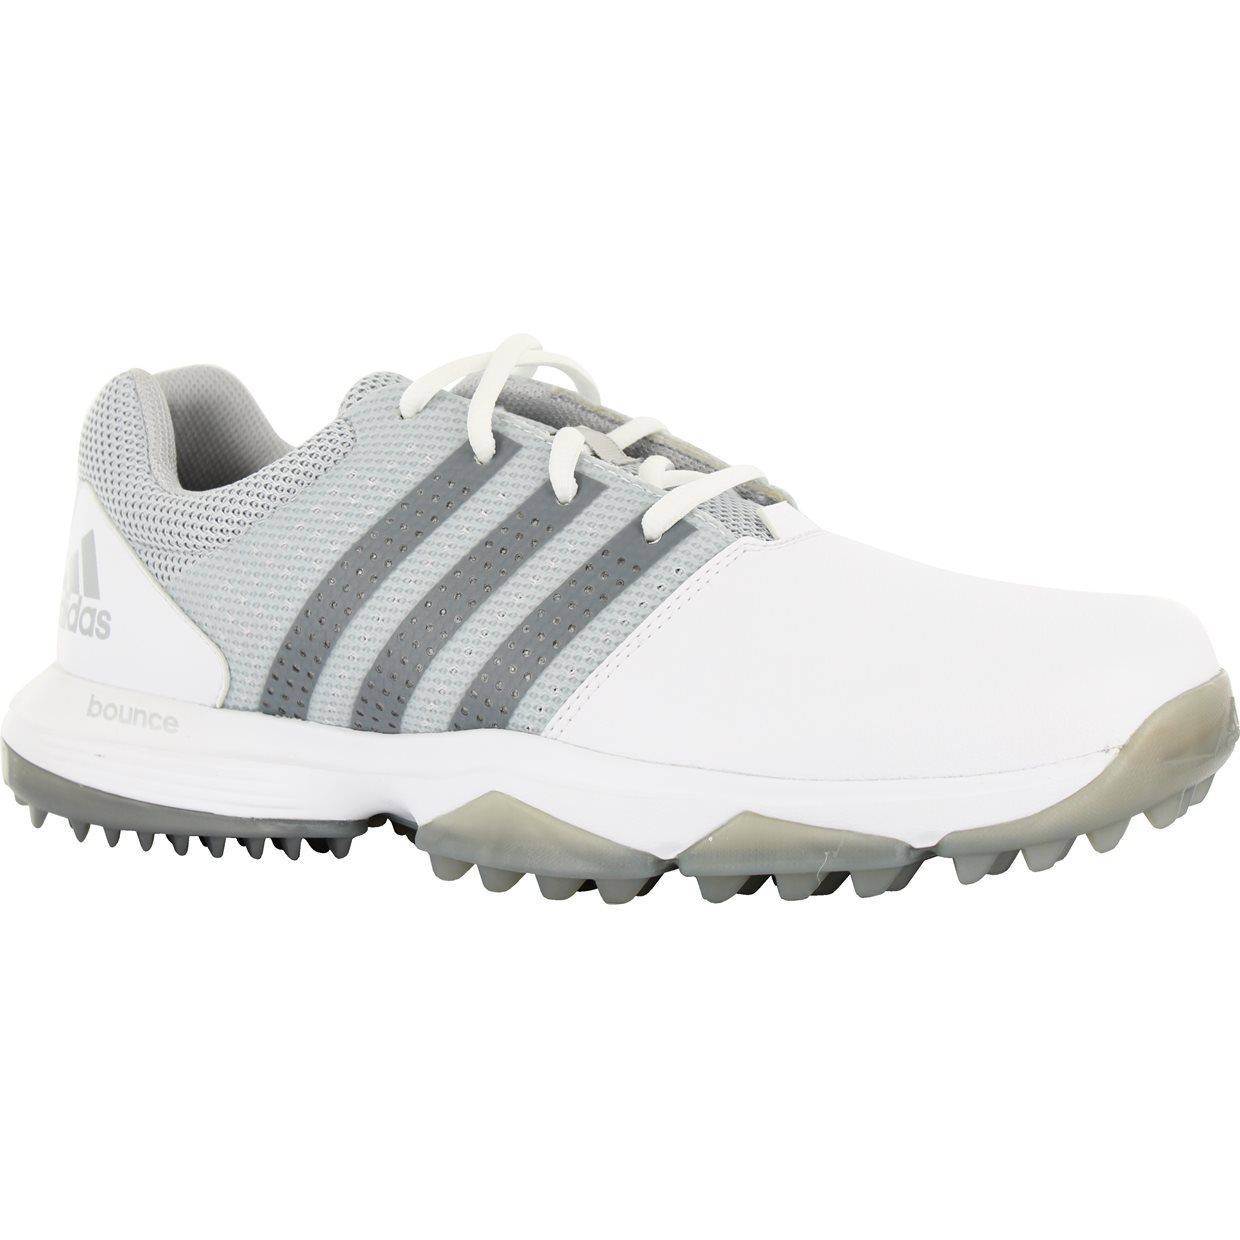 b3145d5483aa Adidas 360 Traxion Bounce Spikeless Shoes at GlobalGolf.com